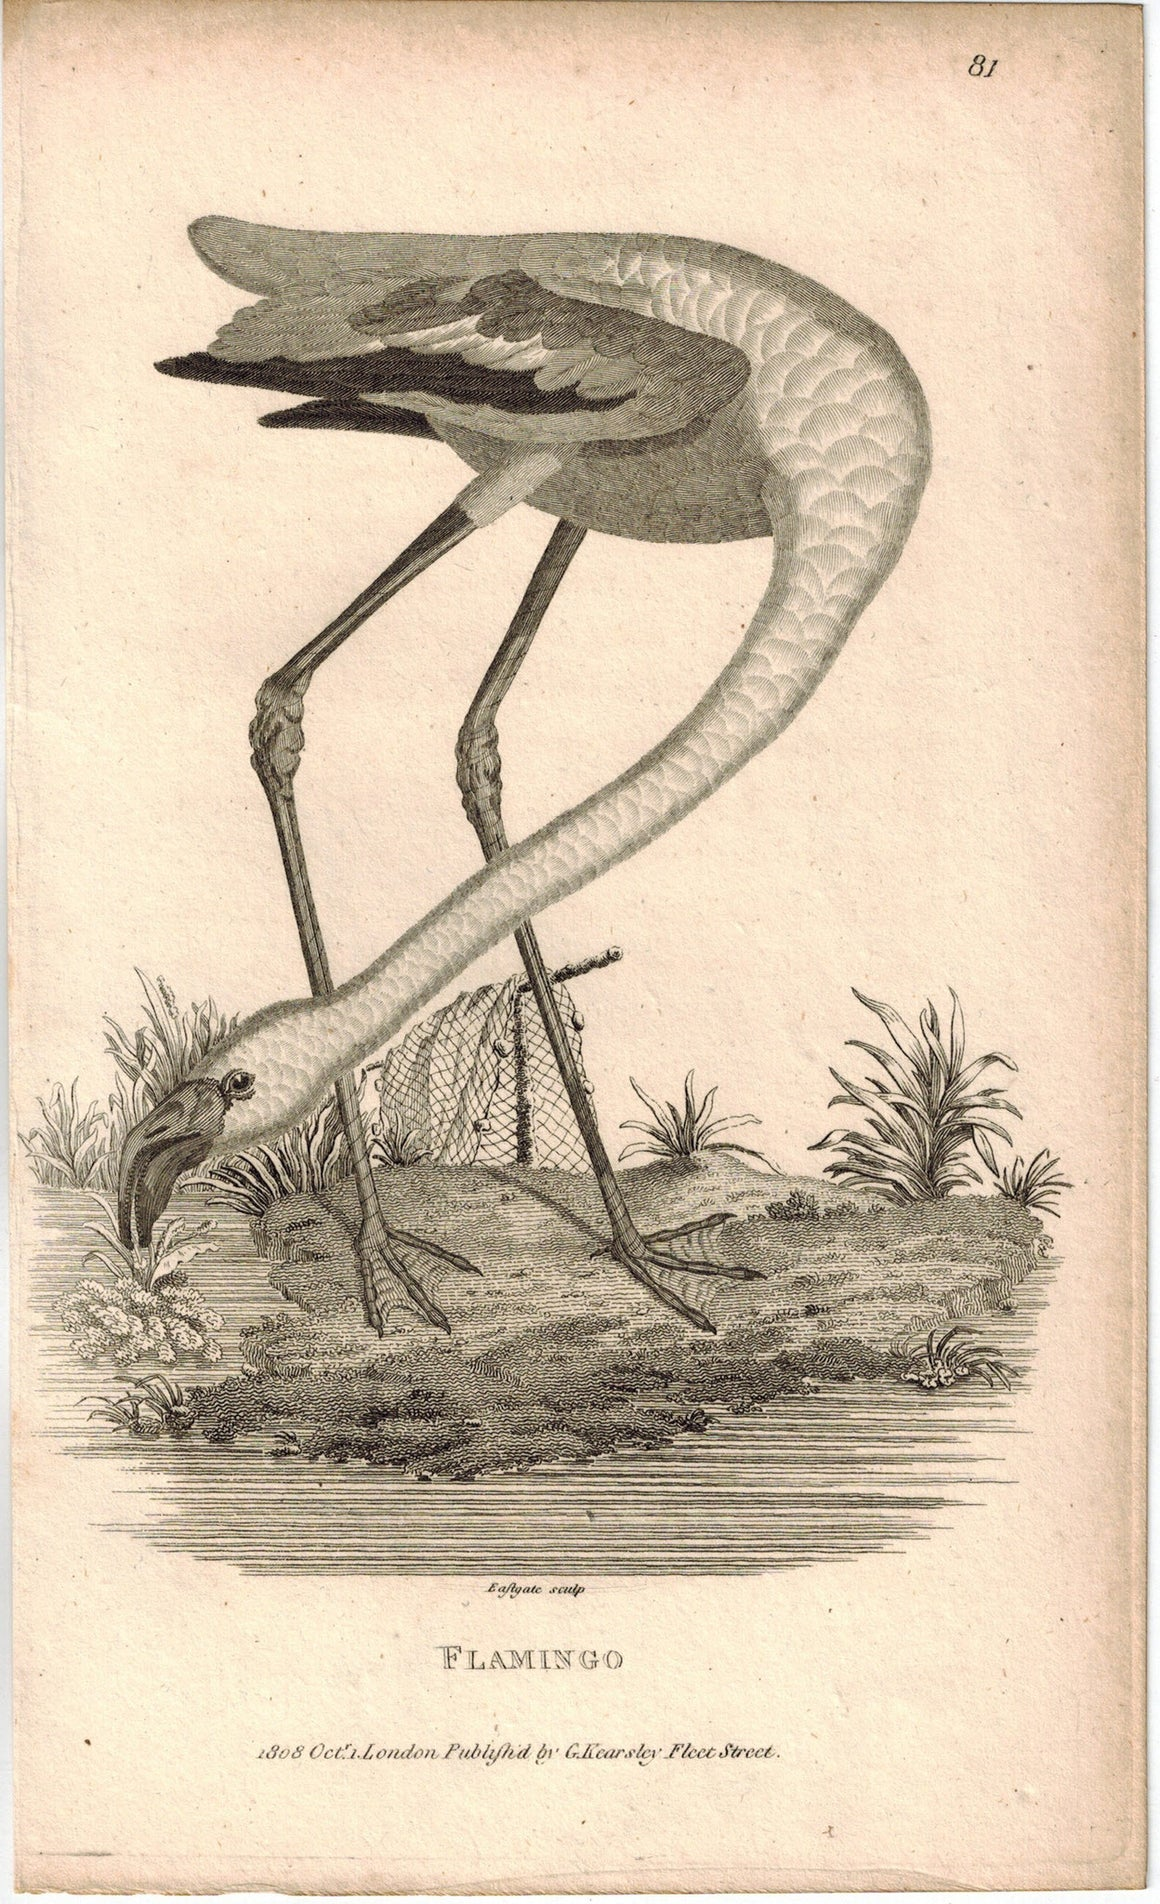 Flamingo Print 1809 George Shaw Original Engraving